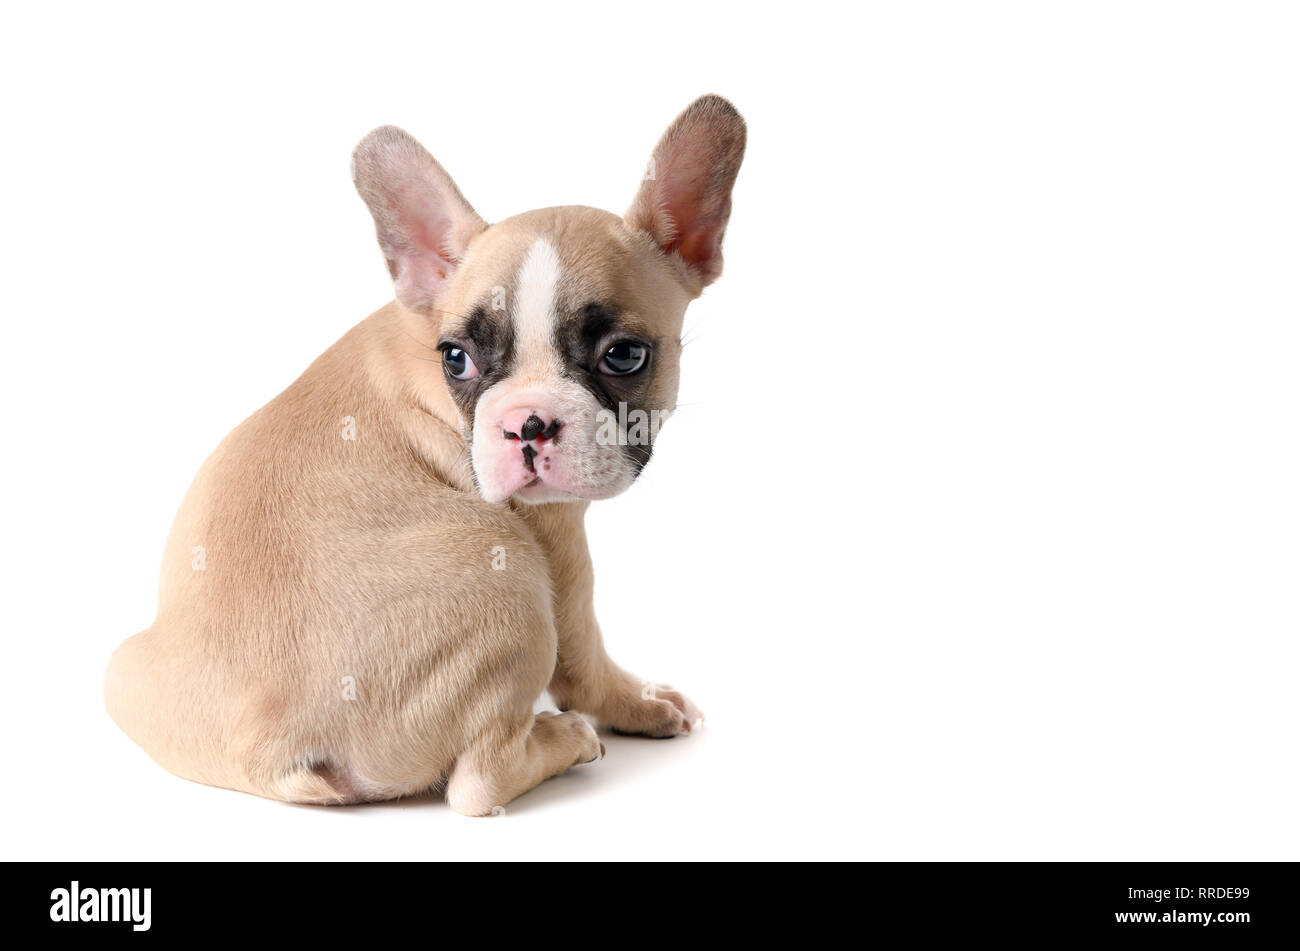 Cute little French bulldog sitting isolated on white background, Pet animal concept - Stock Image